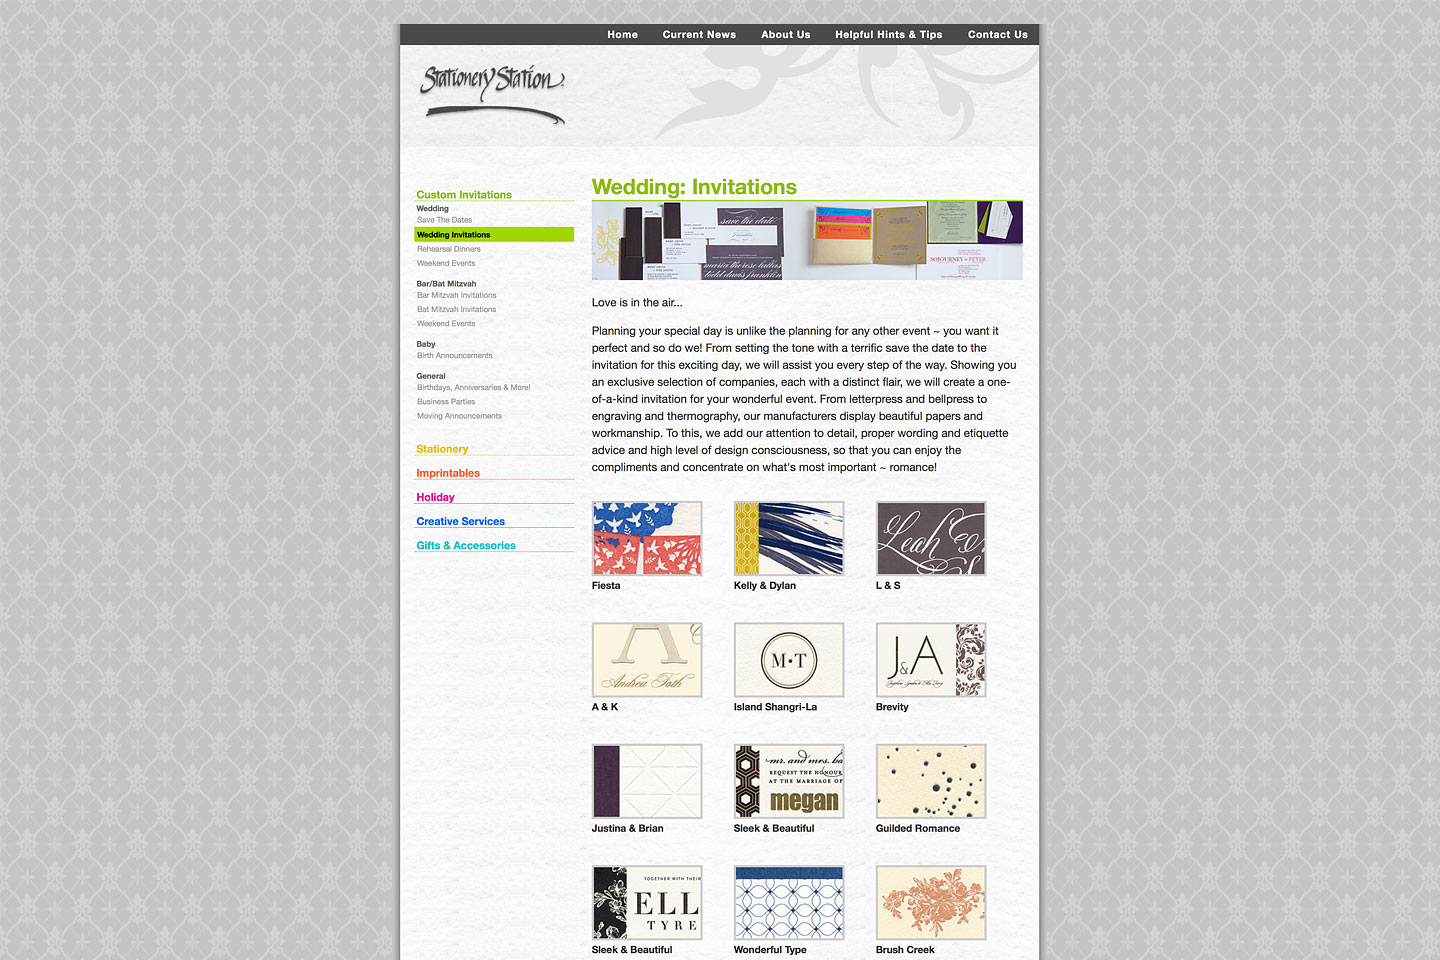 a screen capture of the stationery station custom wedding invitations landing page, designed and developed by 4d, inc